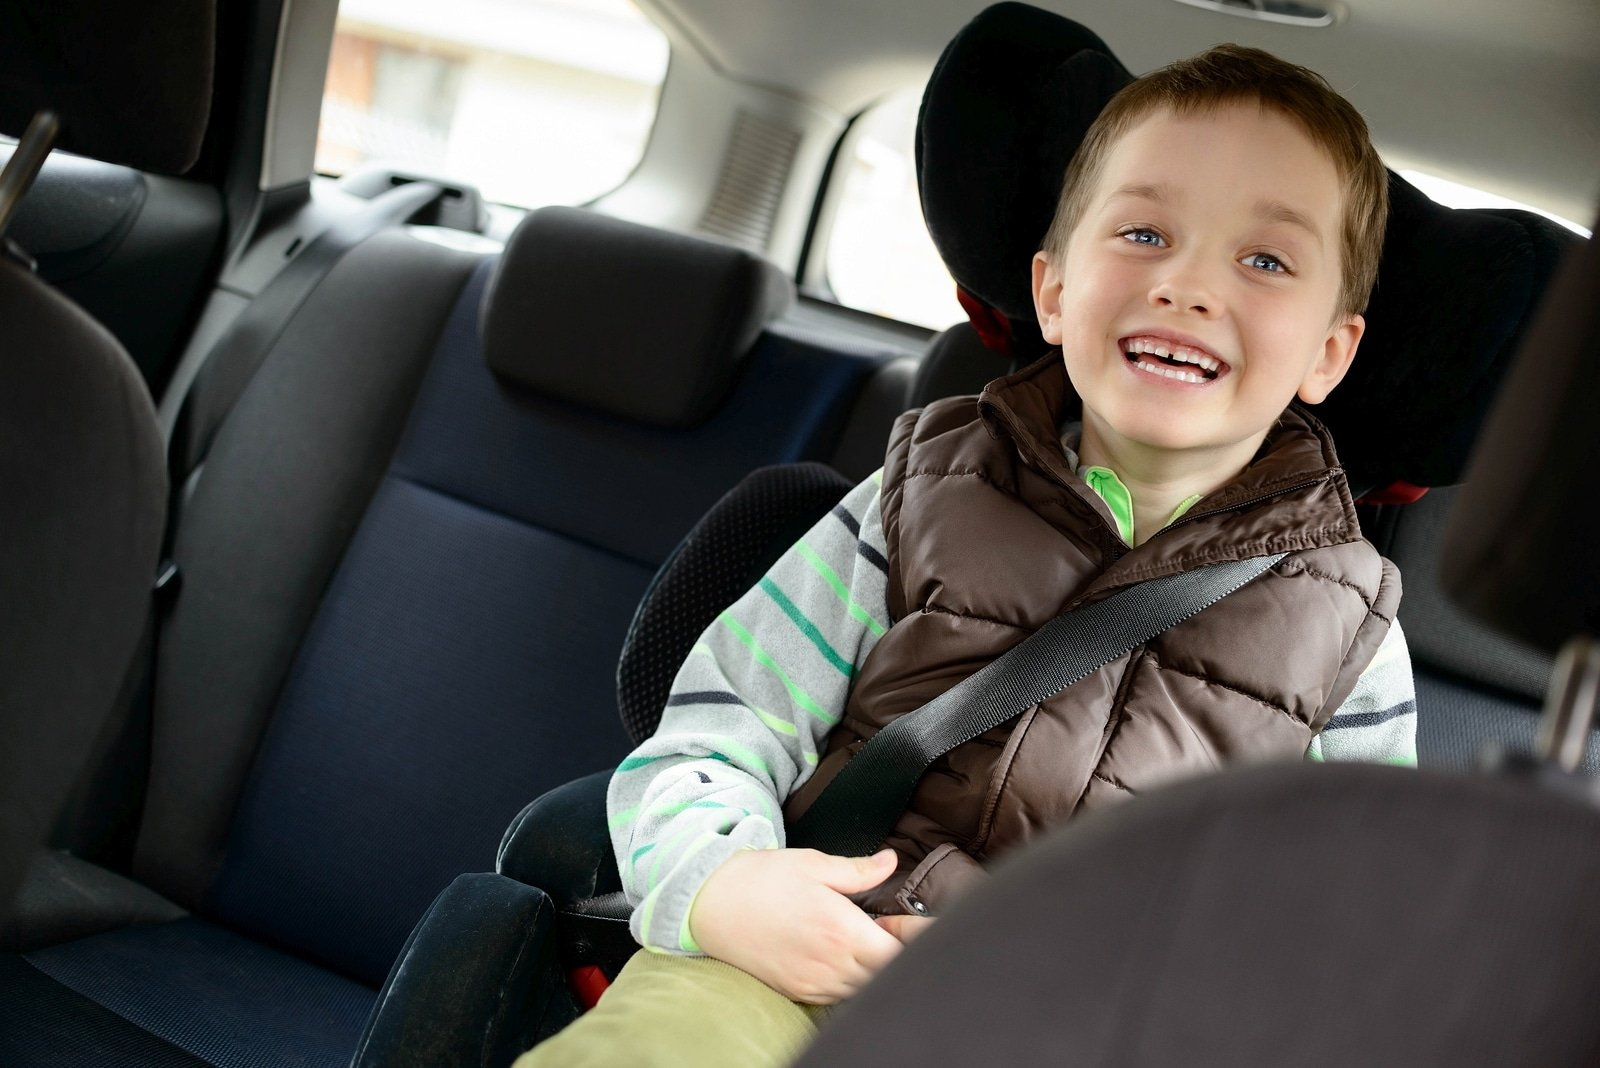 Best activities for the car to entertain young kids on road trips and while running errands.